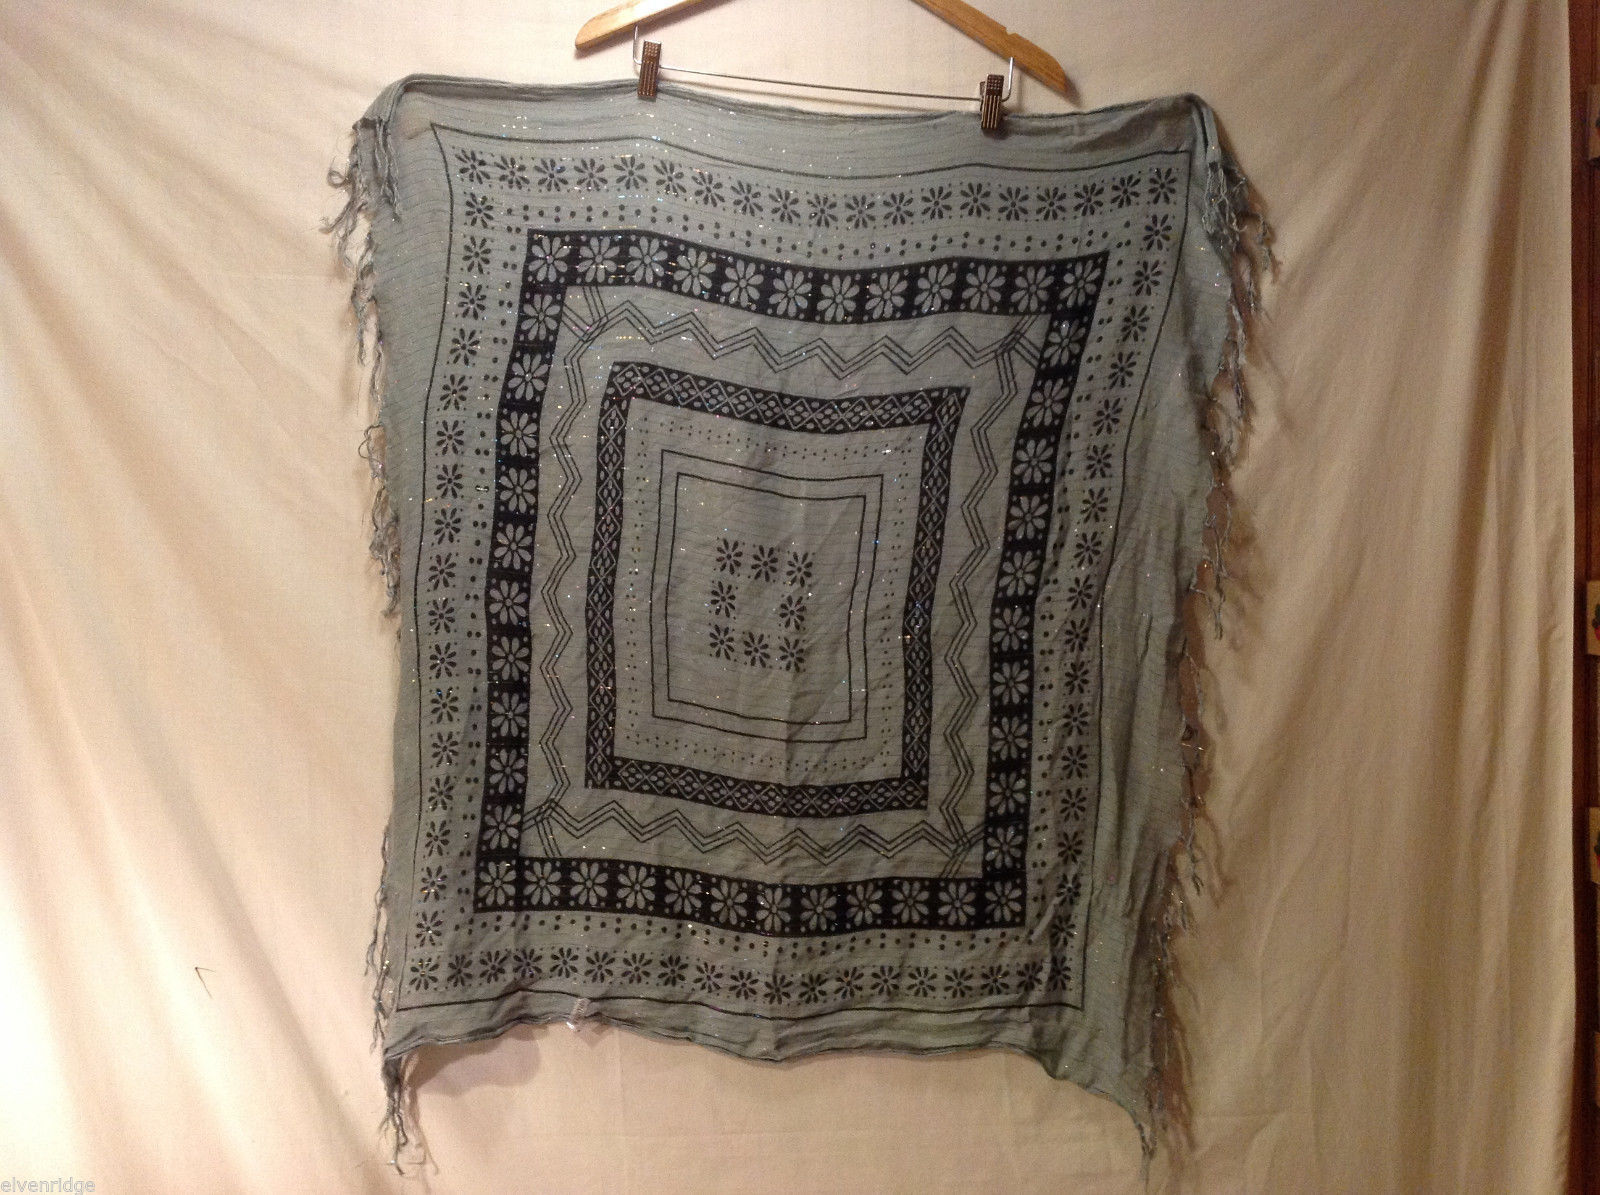 Lightweight Sparkly Light Gray Scarf w/ Fringe & Black Geometric Floral Print